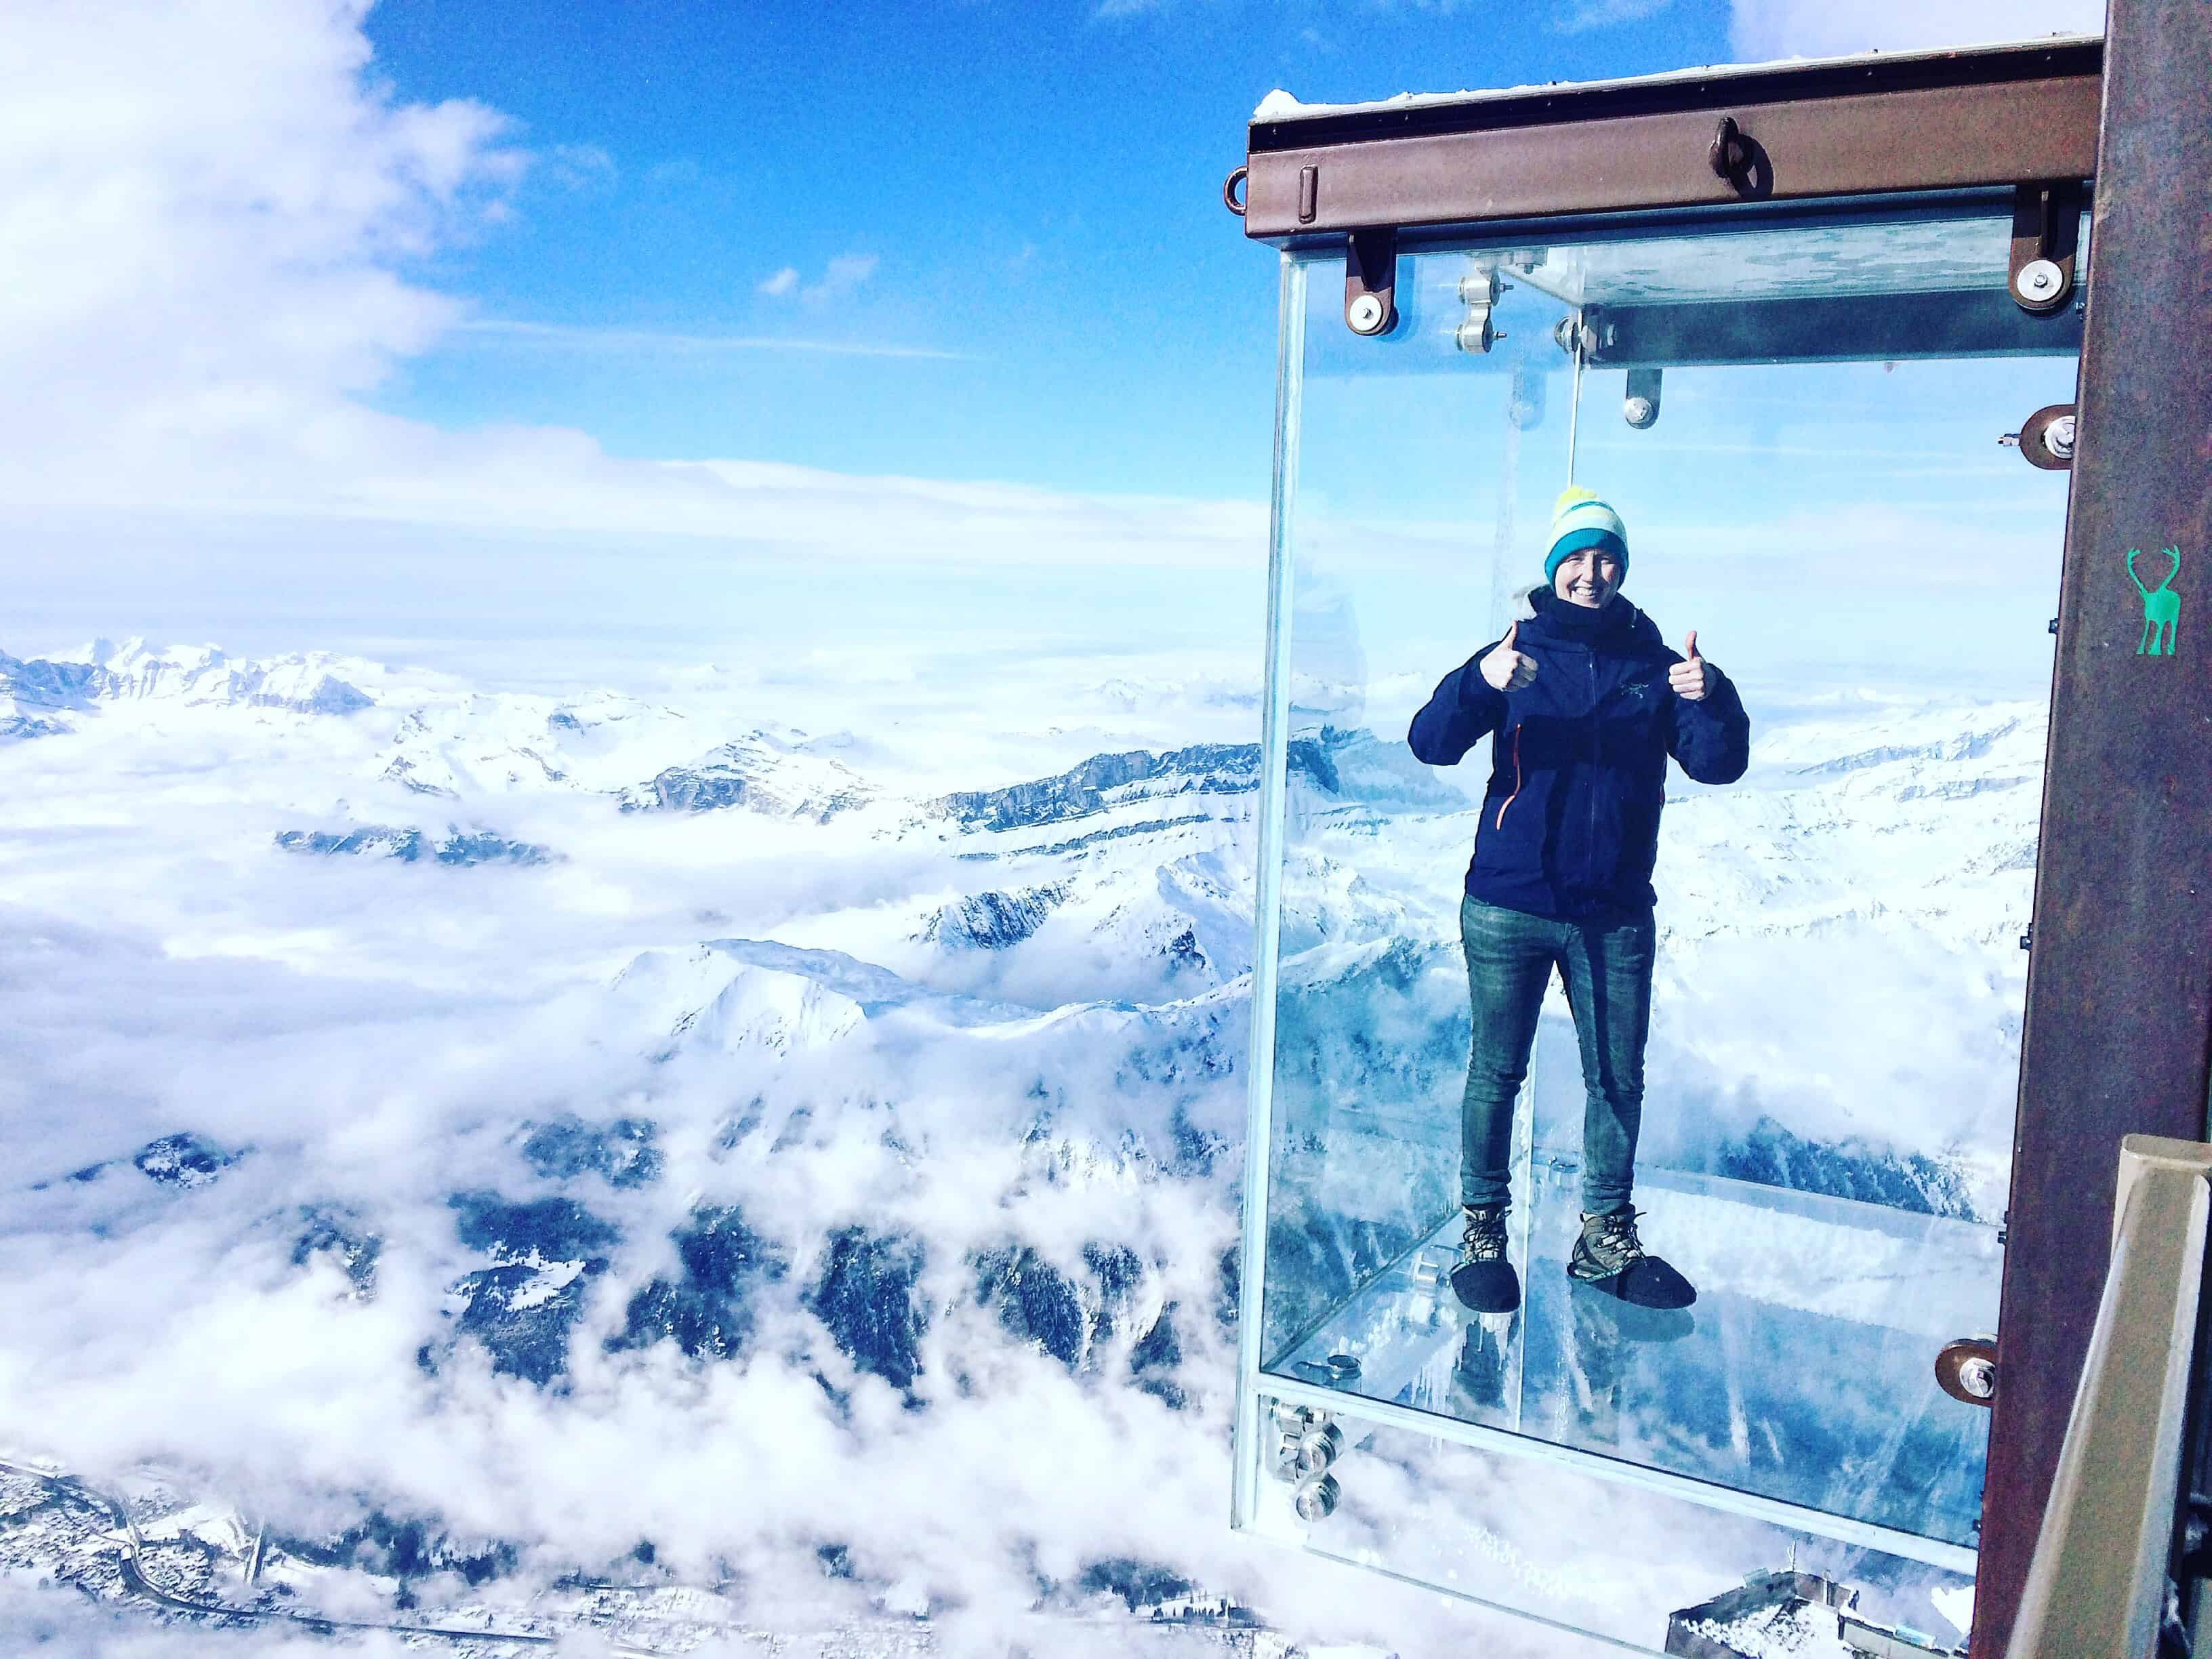 Step into the Void - a glass box suspended 1000m high